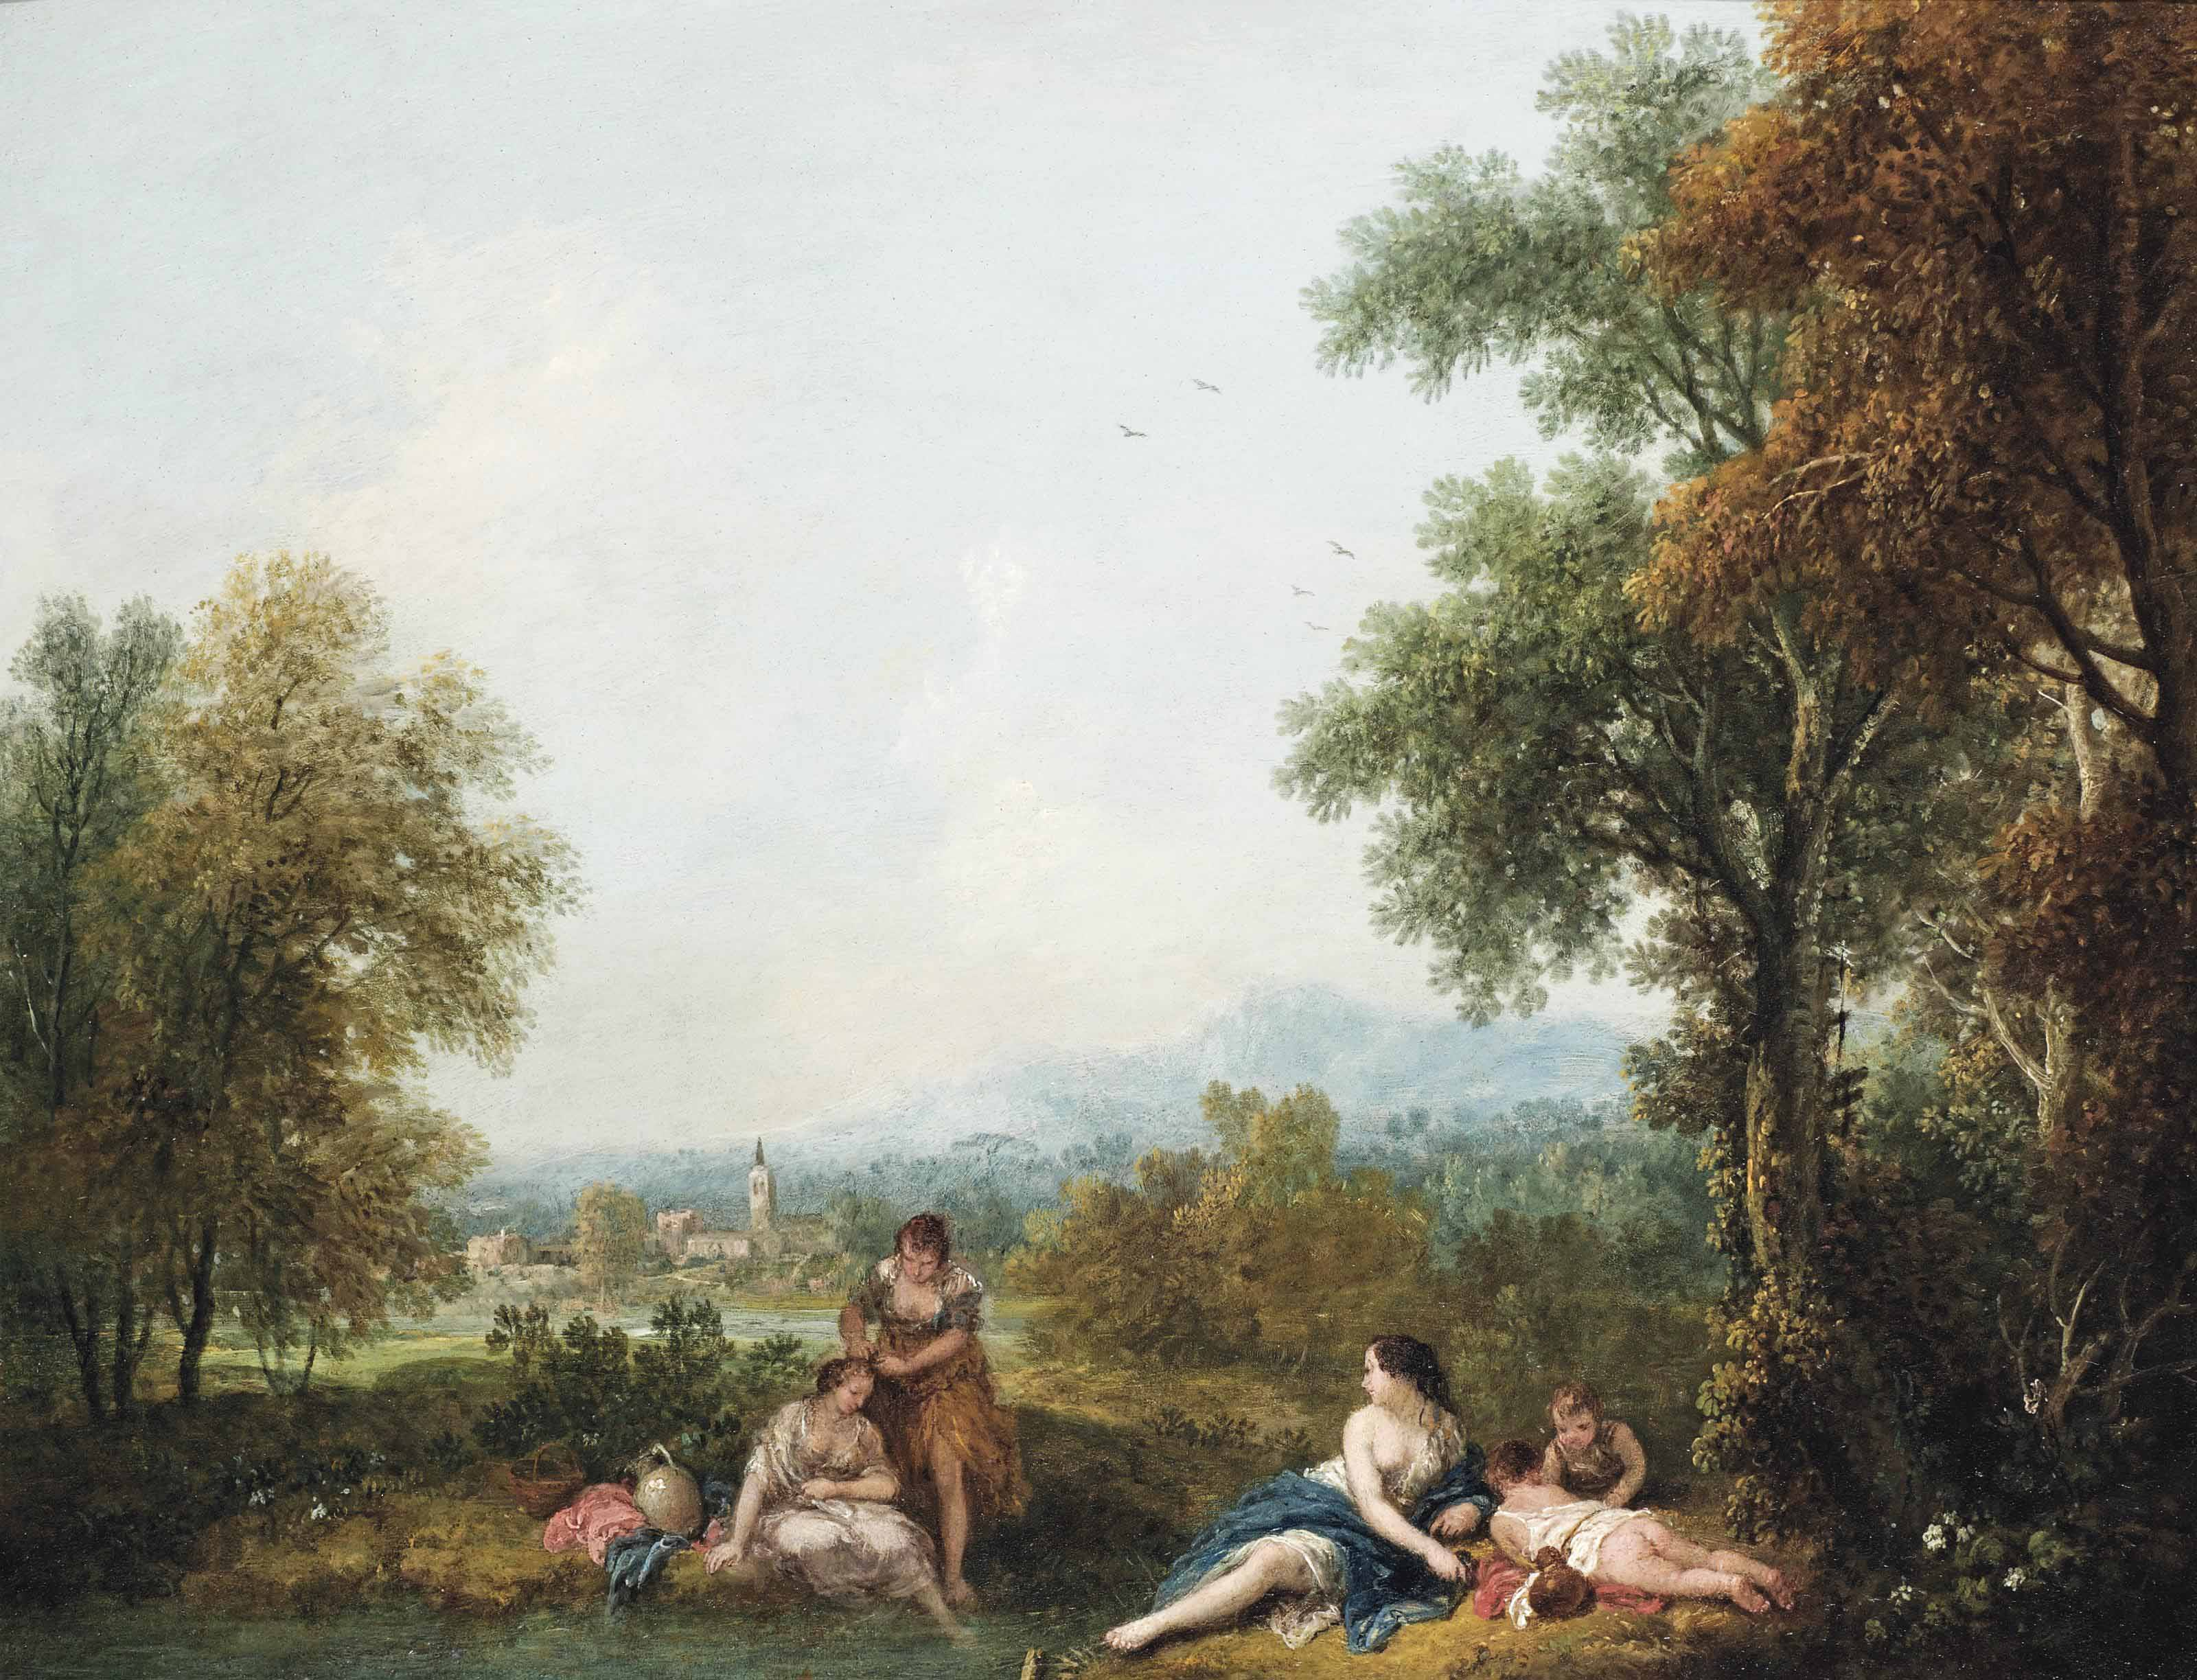 A pastoral river landscape with figures bathing